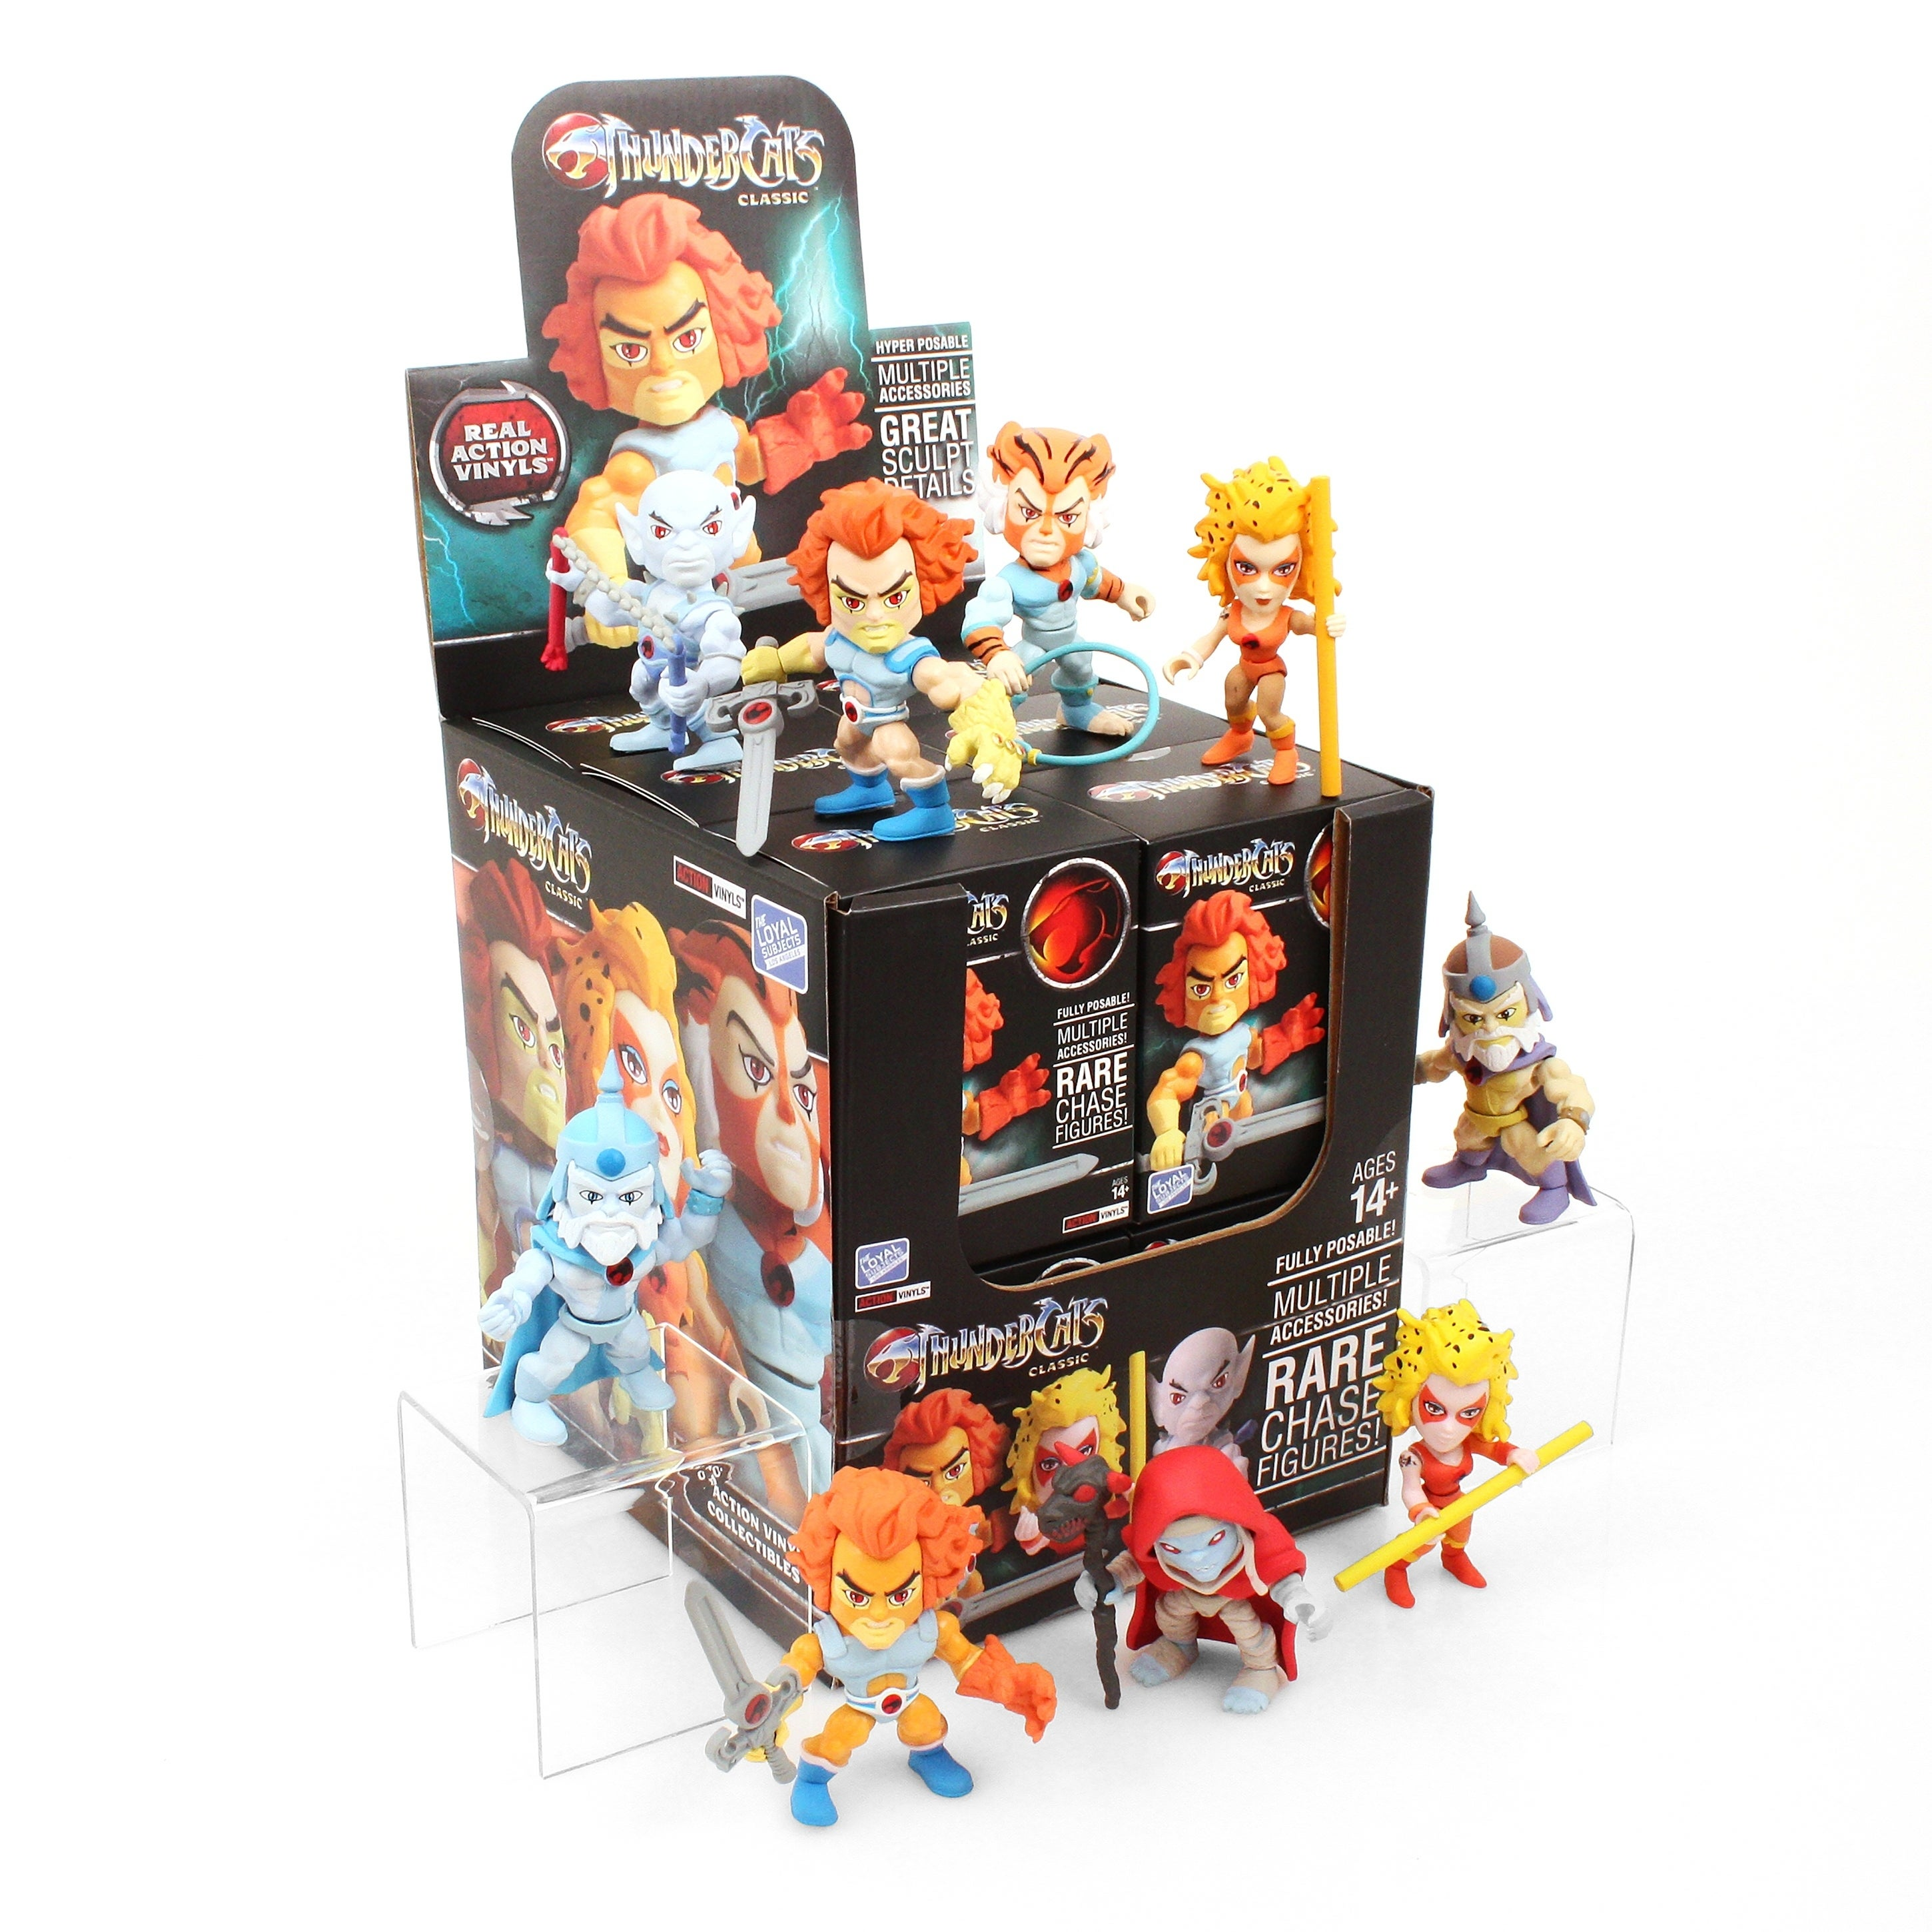 1 Random Blind Box The Loyal Subjects Transformers Mini Figures Collection